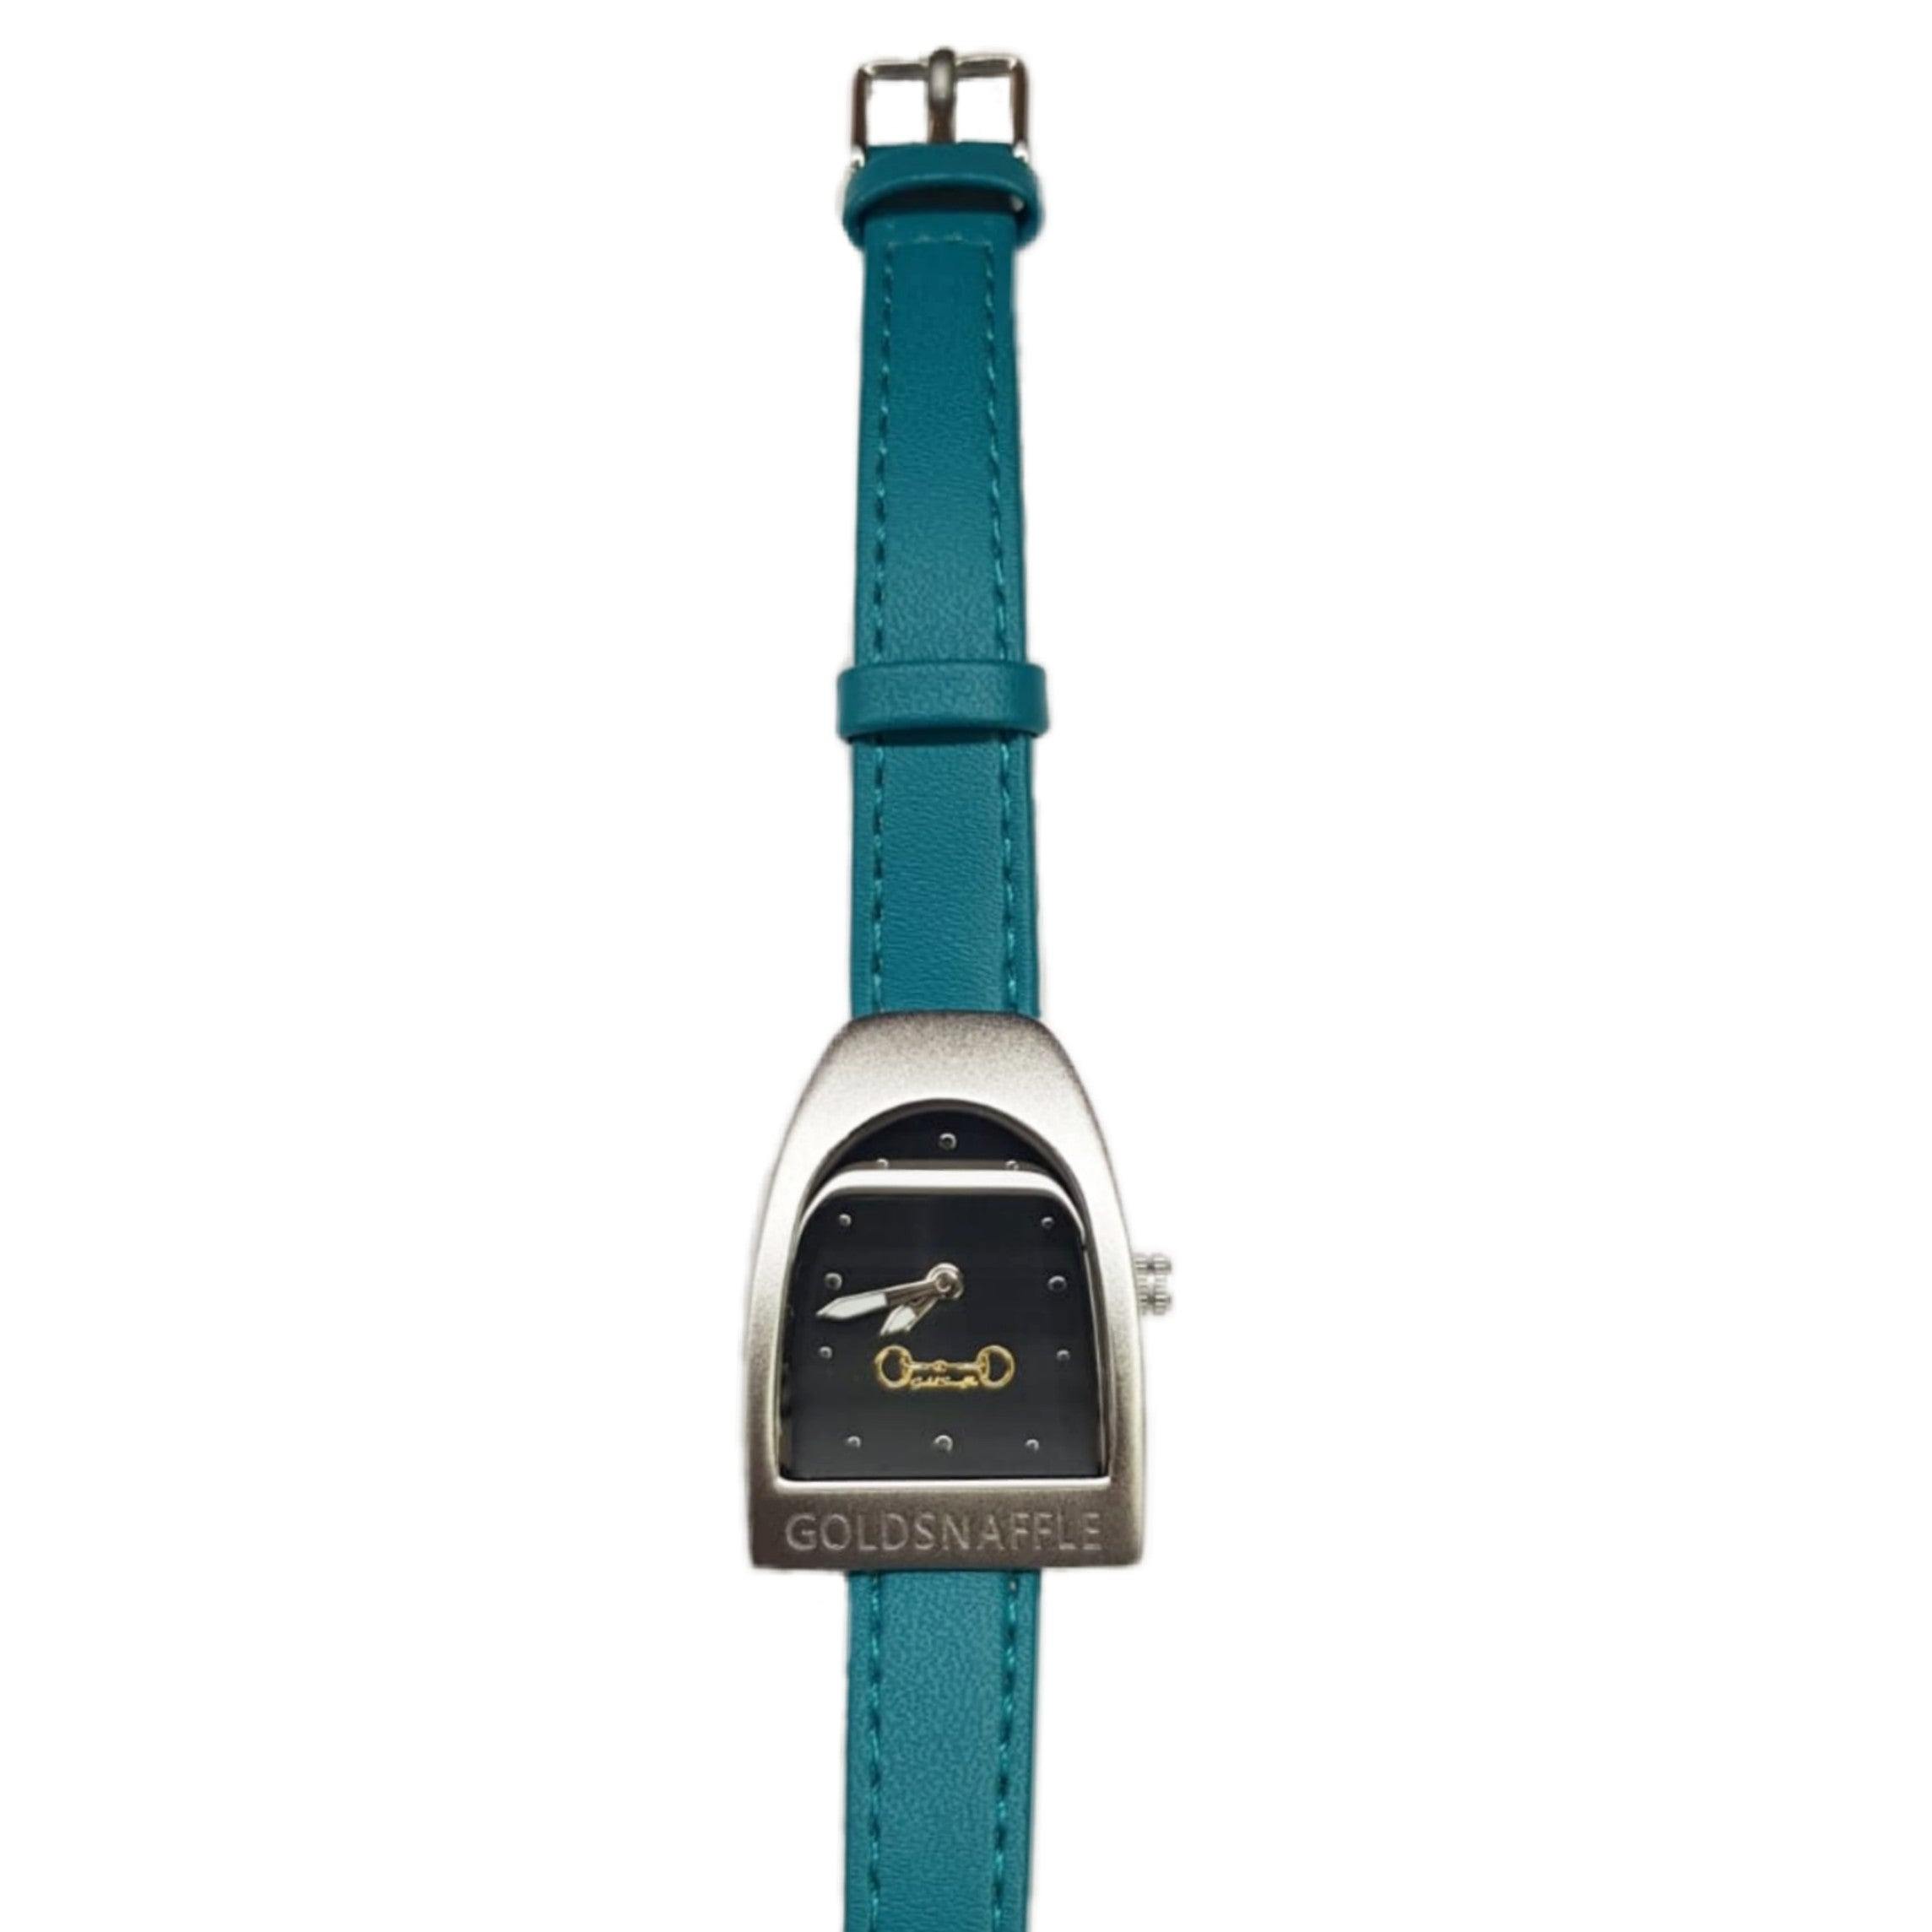 Stunning laser plated stirrup watches - watch - GoldSnaffle